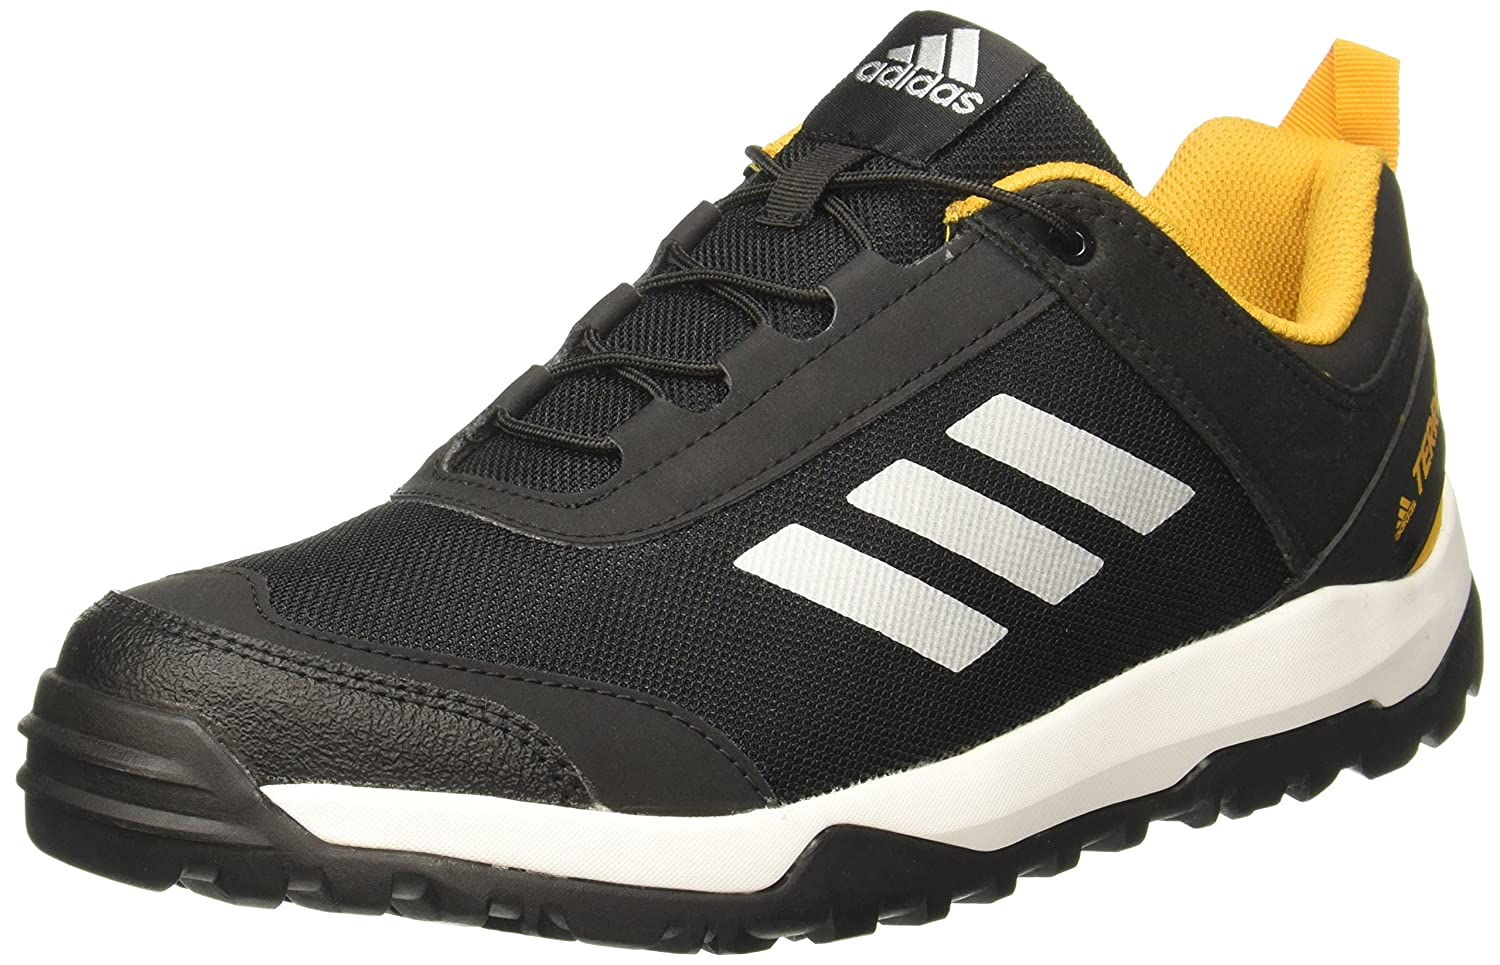 7adaeabad0f95d Adidas Men s Bearn Multisport Training Shoes  Buy Online at Low Prices in  India - Amazon.in